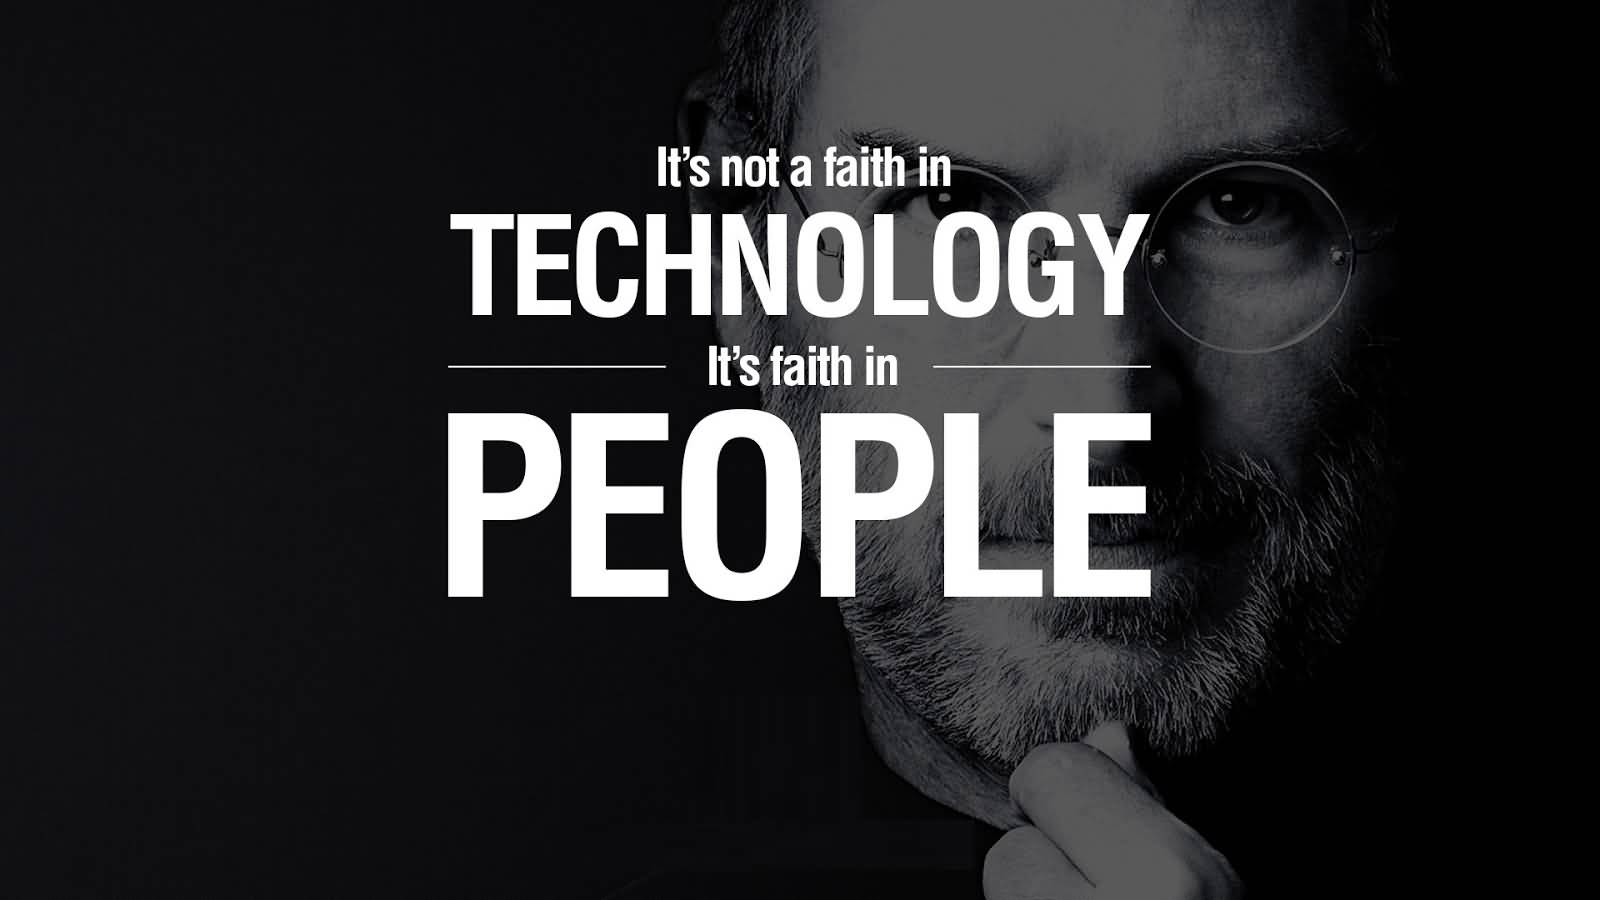 Money Making Quotes Wallpapers 51 Best Technology Quotes And Sayings Collection Picsmine